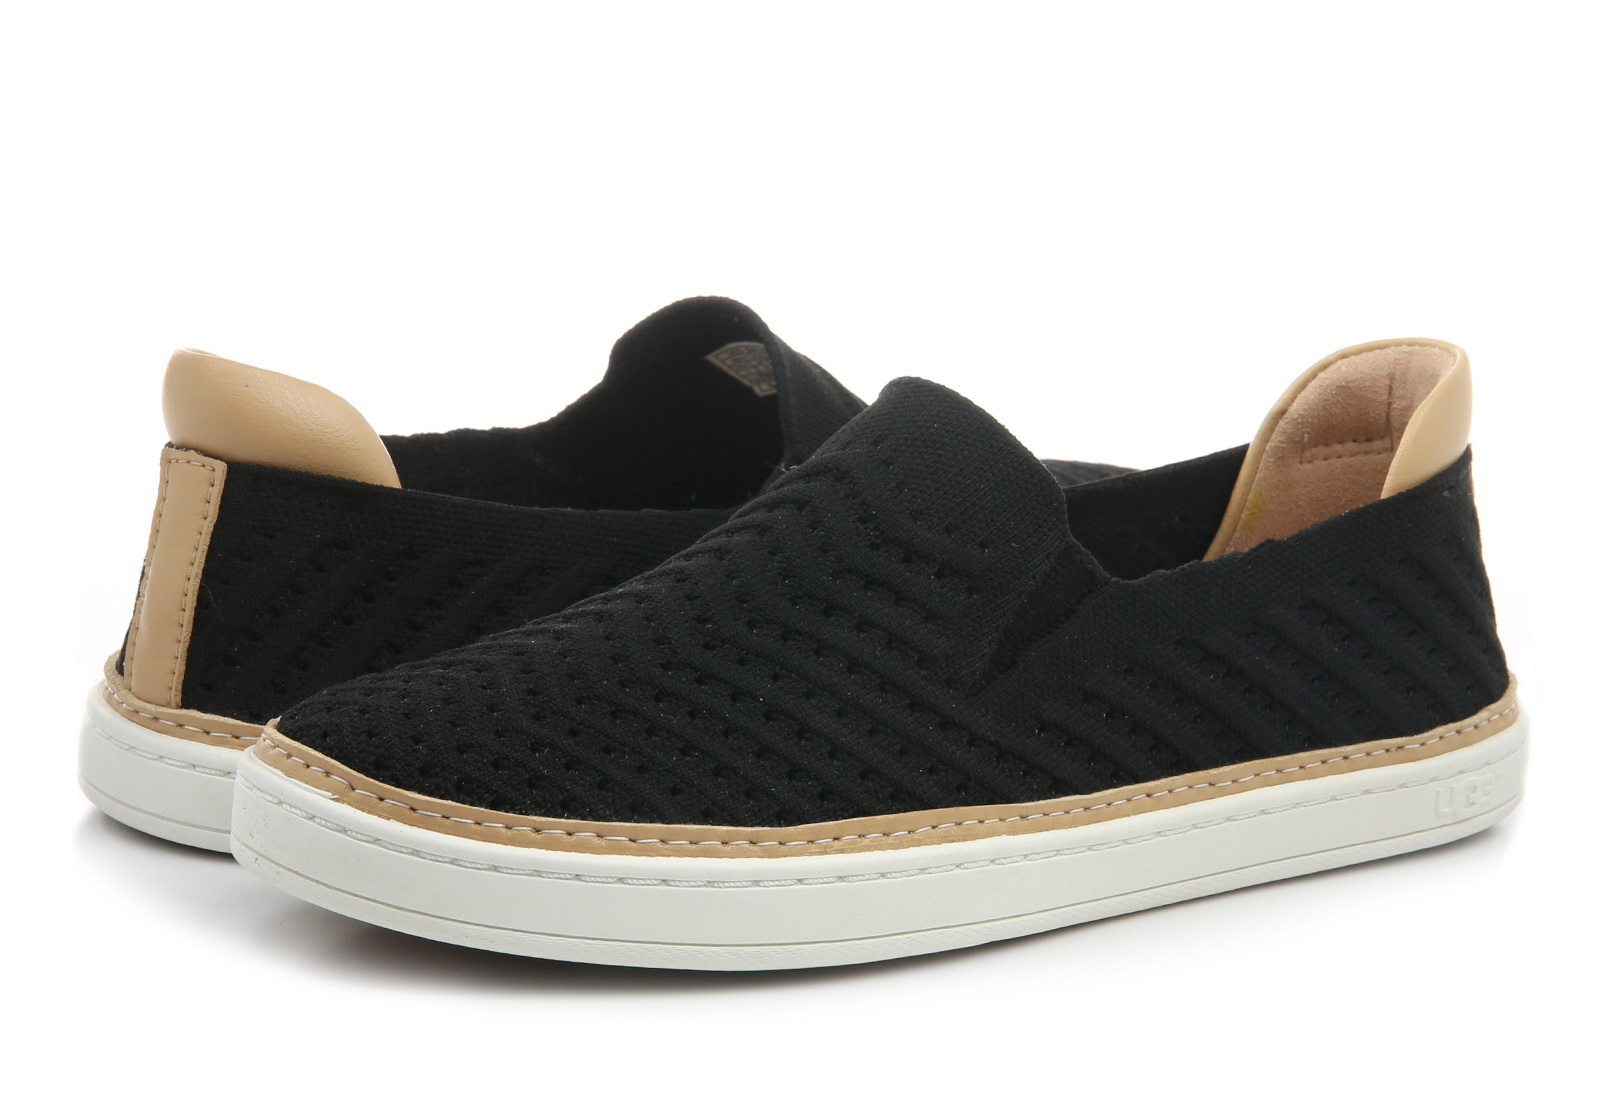 48624ebd5c1 Ugg Shoes - Sammy Chevron - 1102560-blk - Online shop for sneakers, shoes  and boots